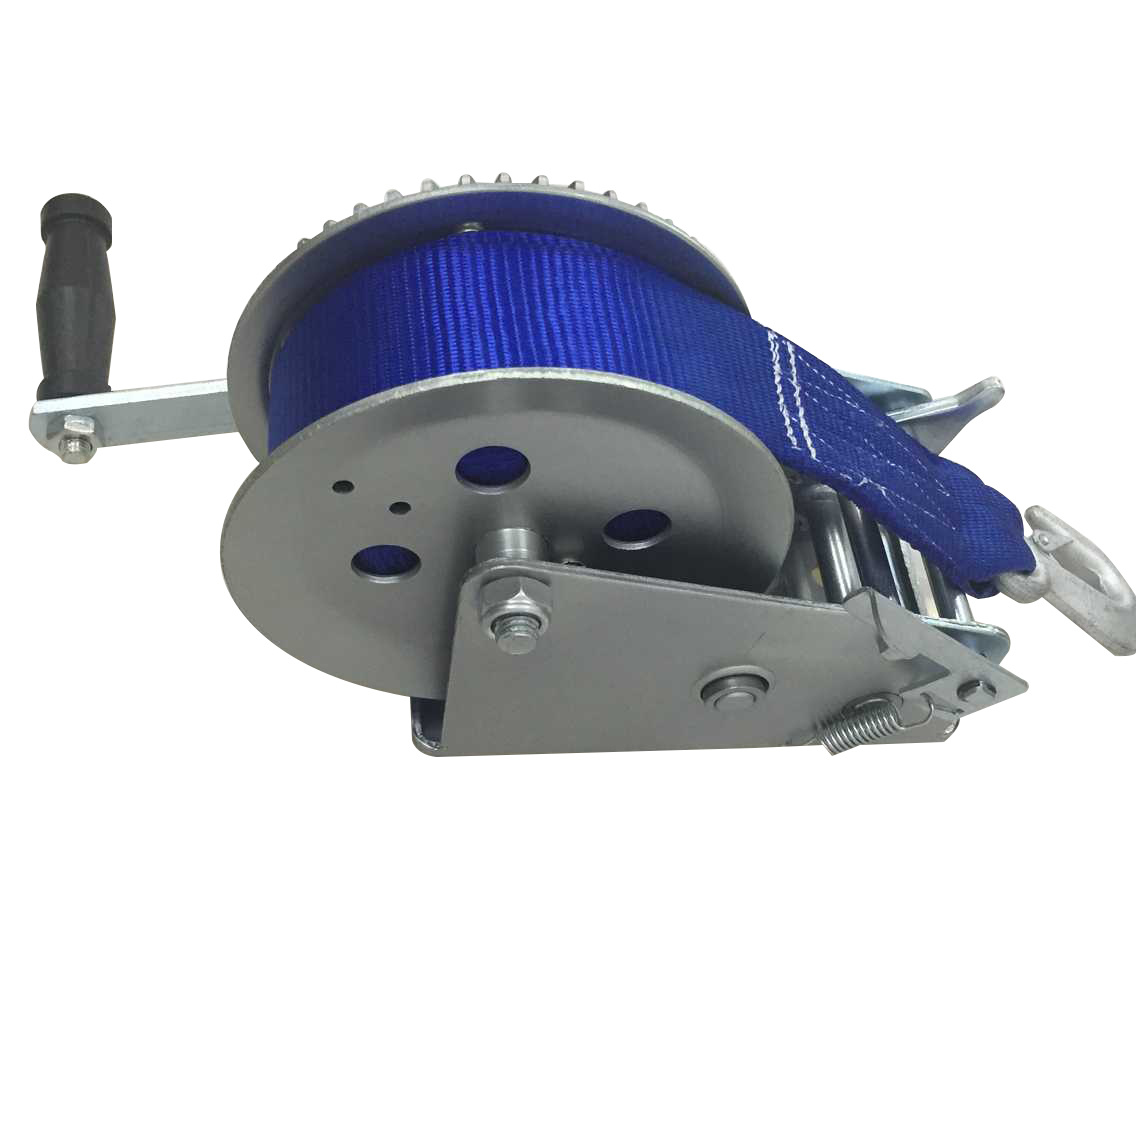 Hand Winch 2500lbs Dacromet with Cable